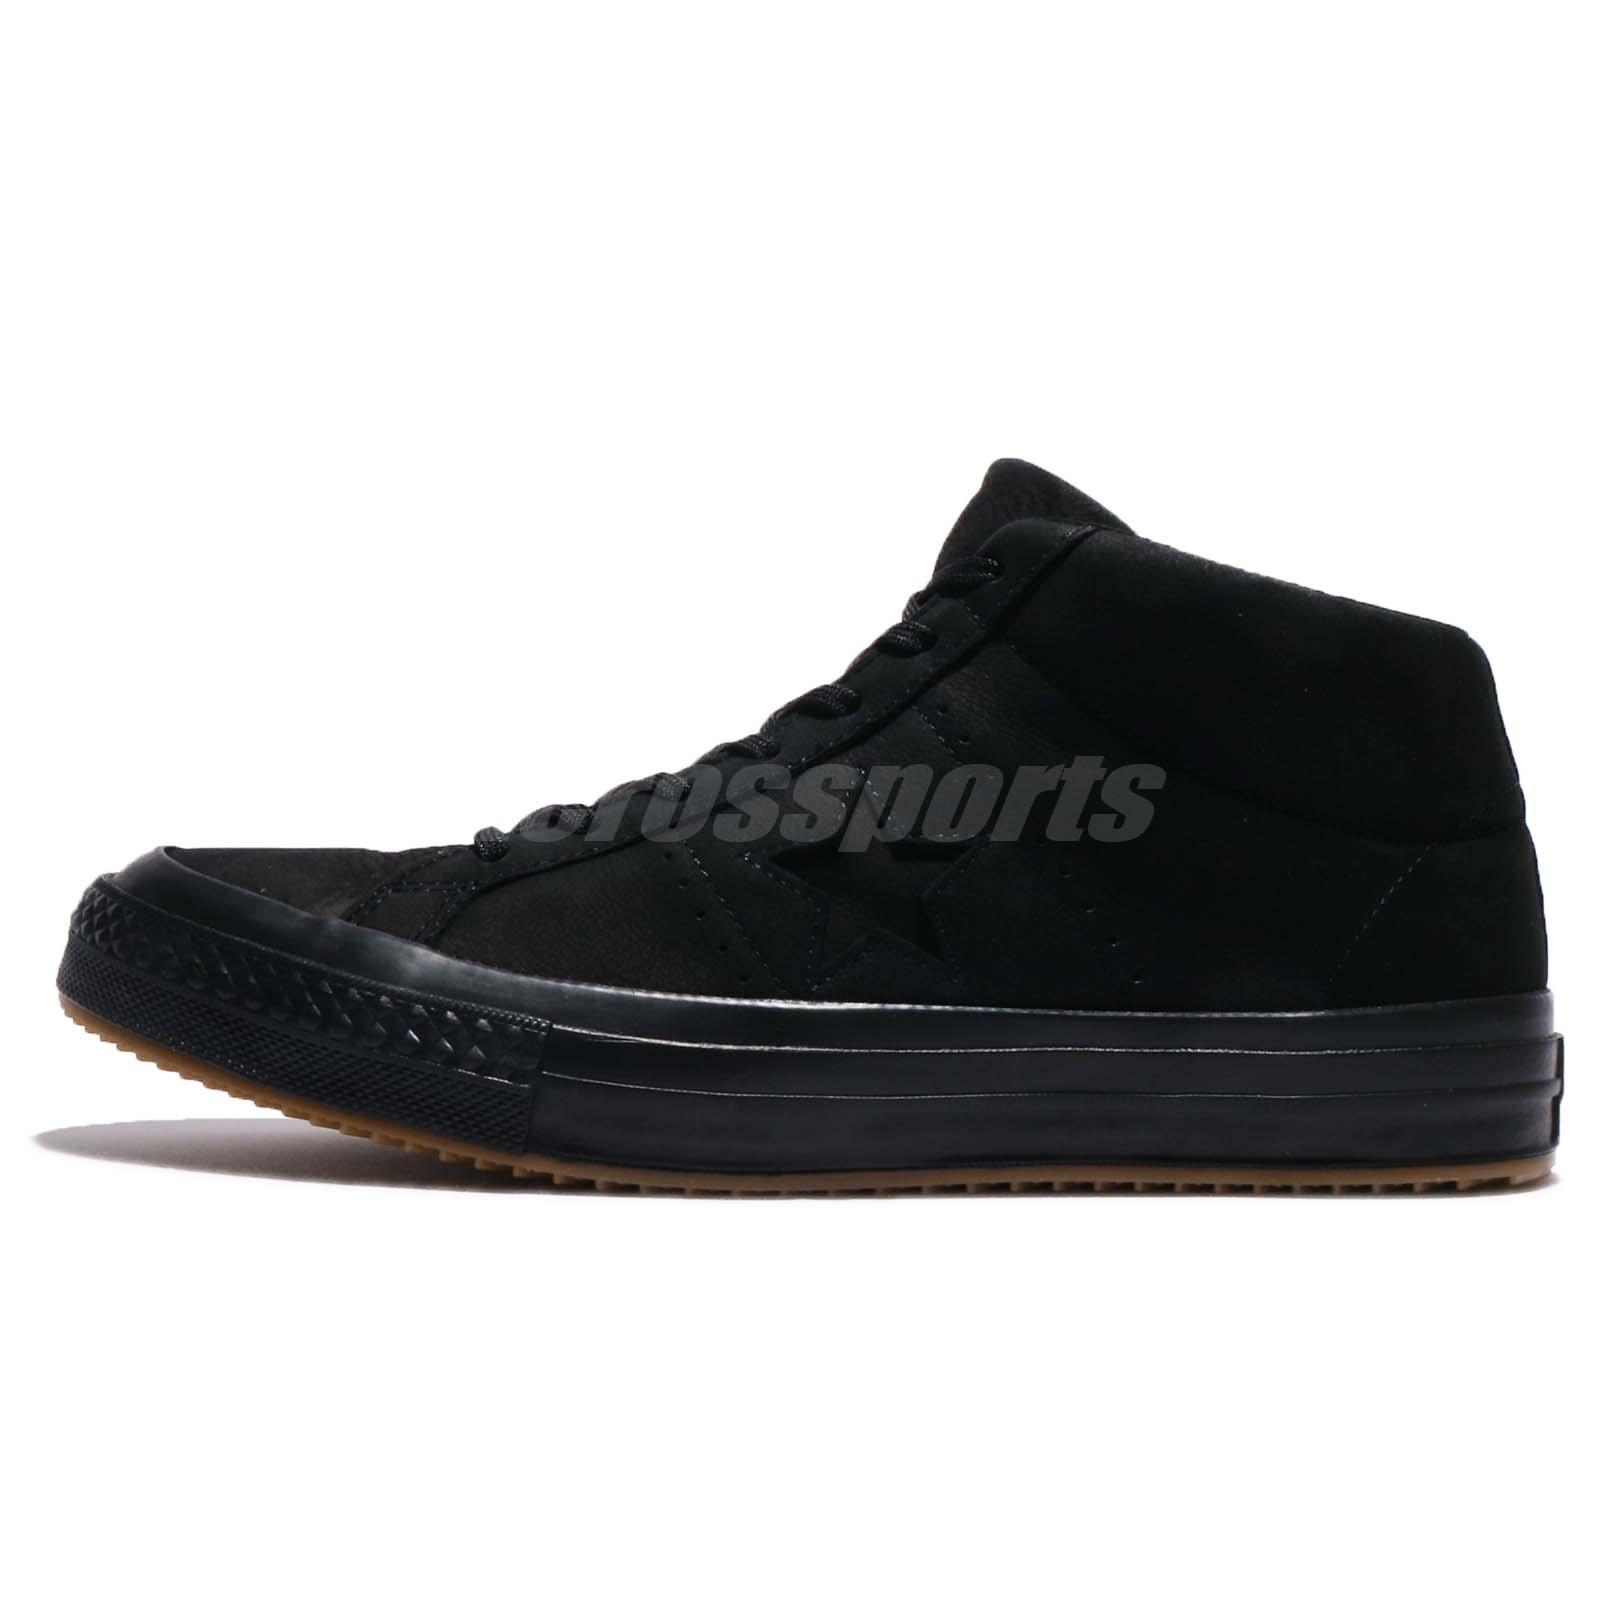 1c213a547e93 Converse One Star Mid WP Black Nubuck Counter Climate Men Shoes Sneakers  158832C